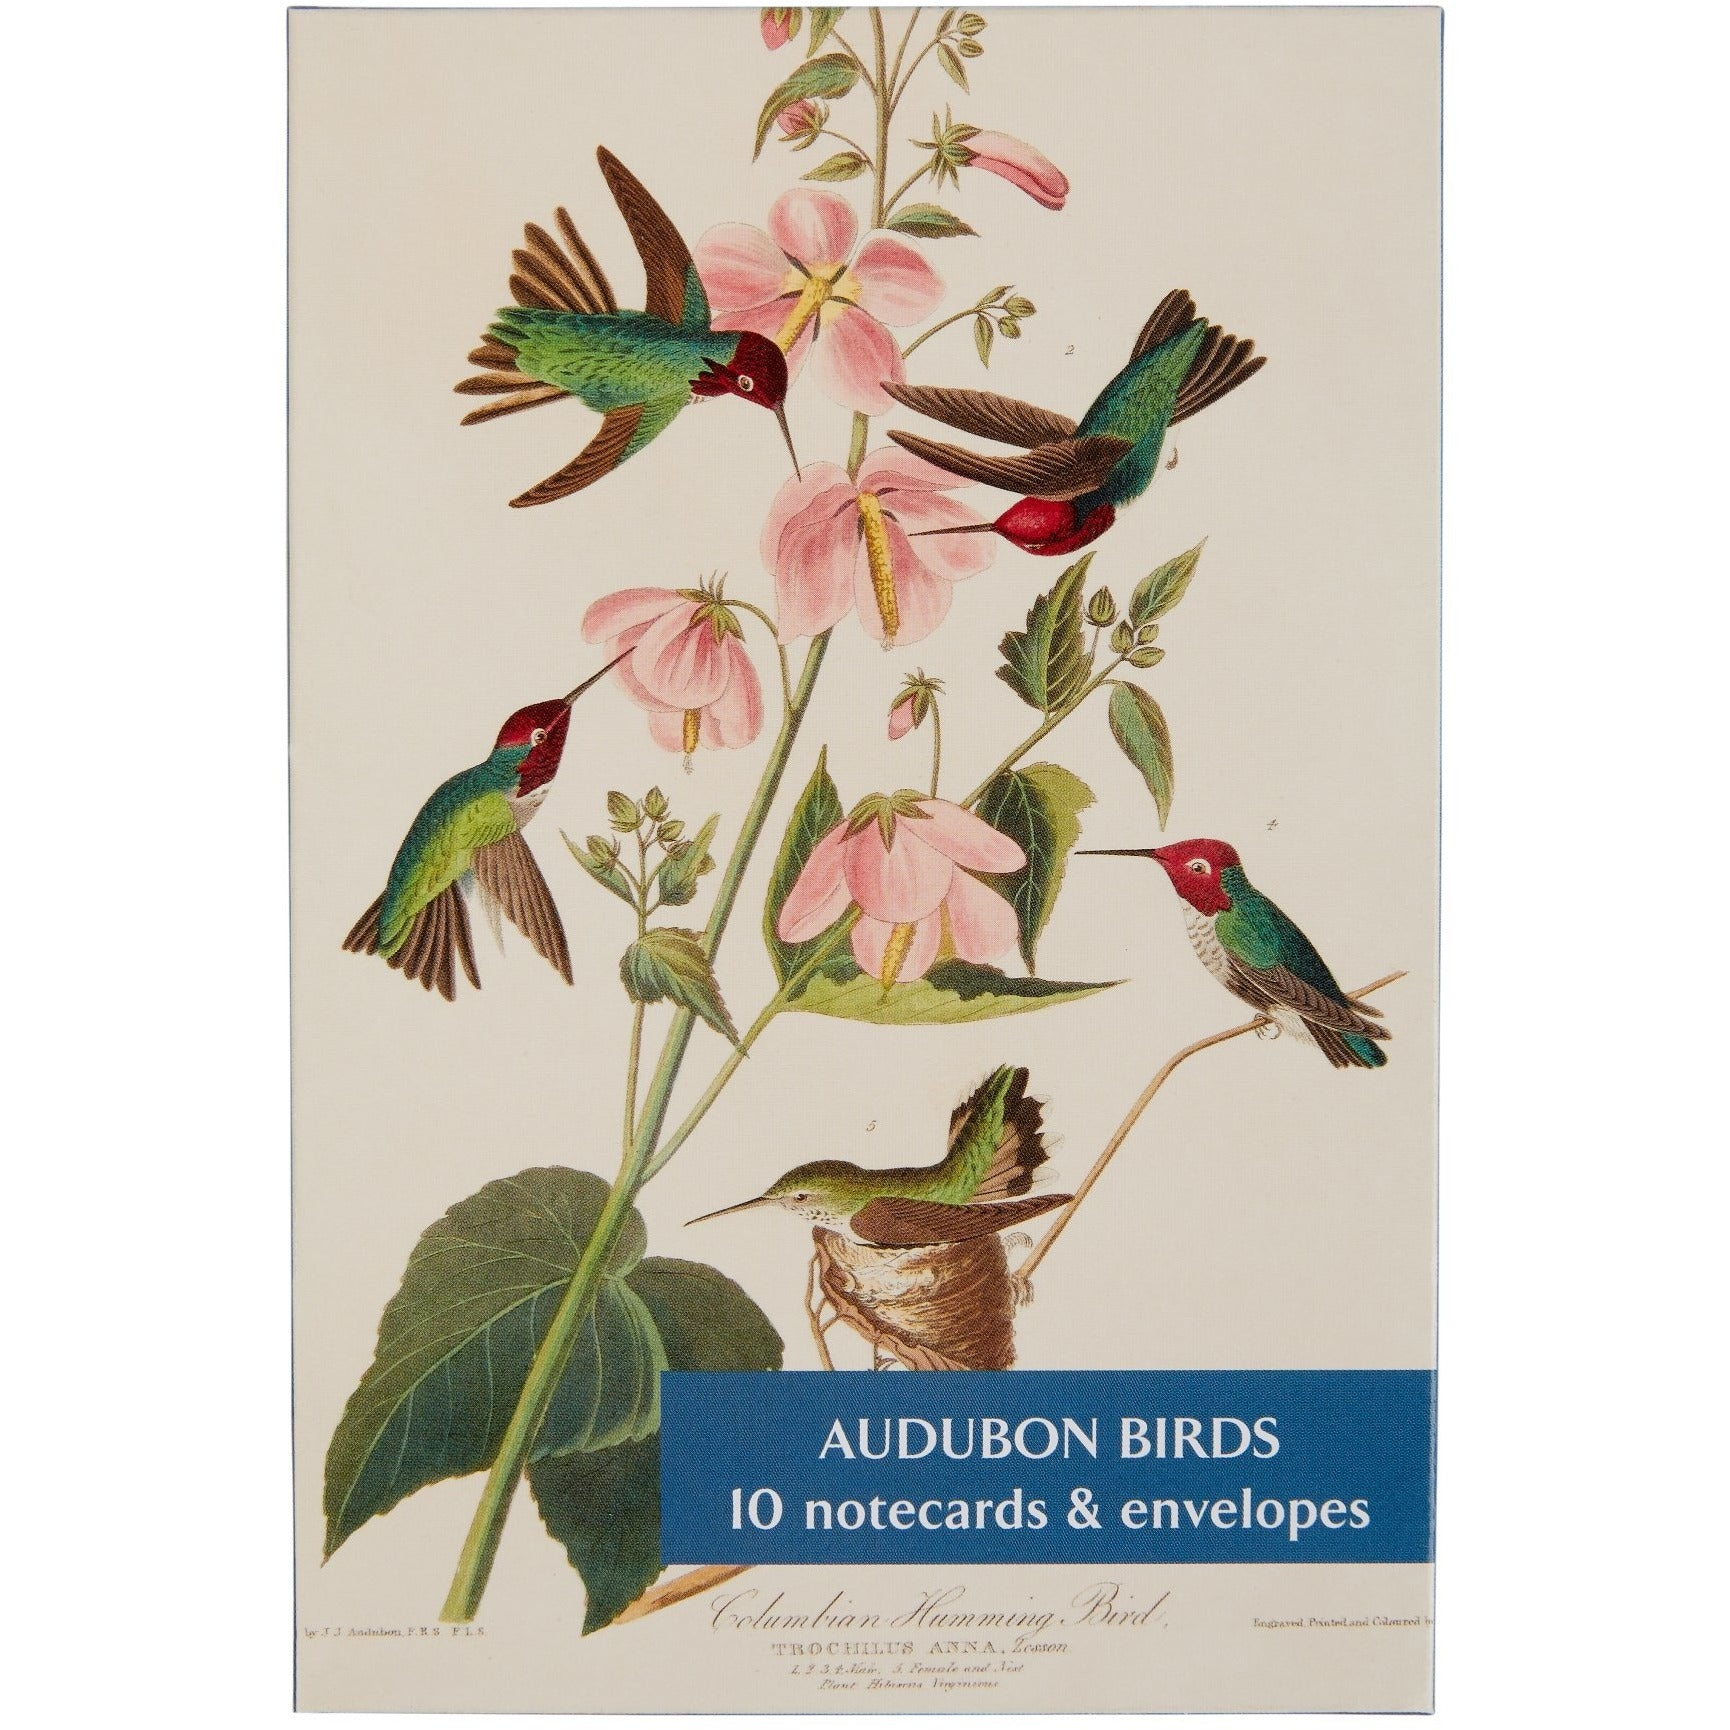 Featured image for the project: Audubon Birds - Notecard pack